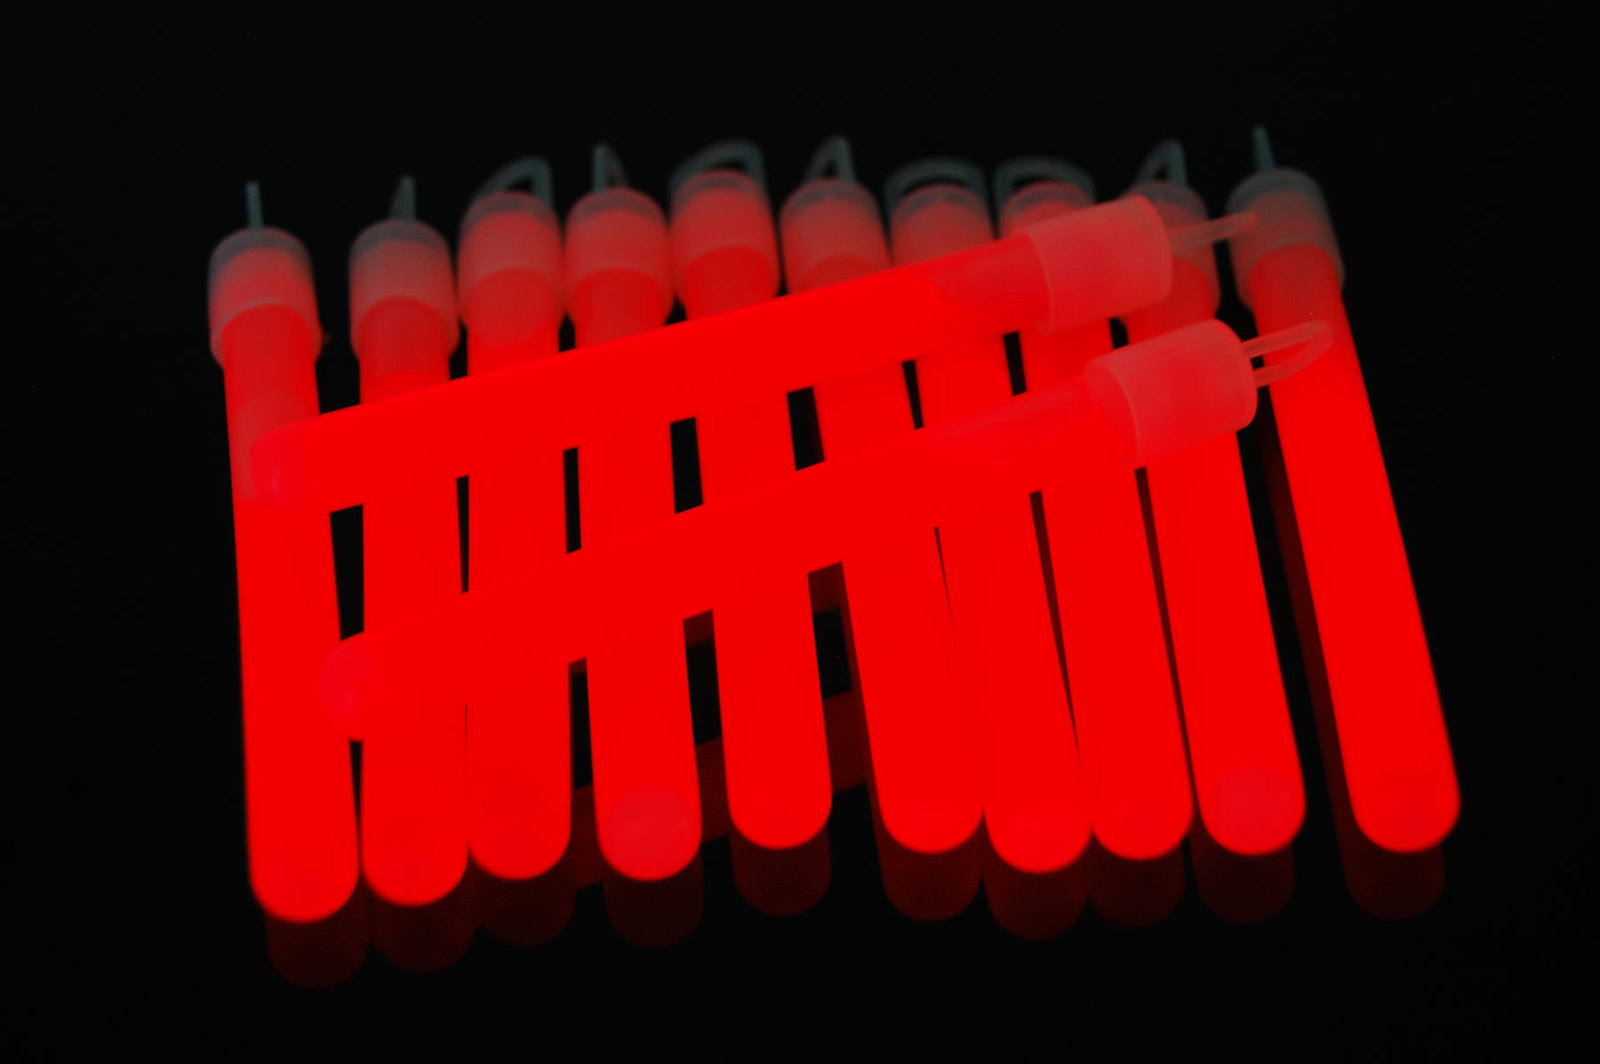 4 inch Premium Red Glow Sticks with Lanyards- 25 Count